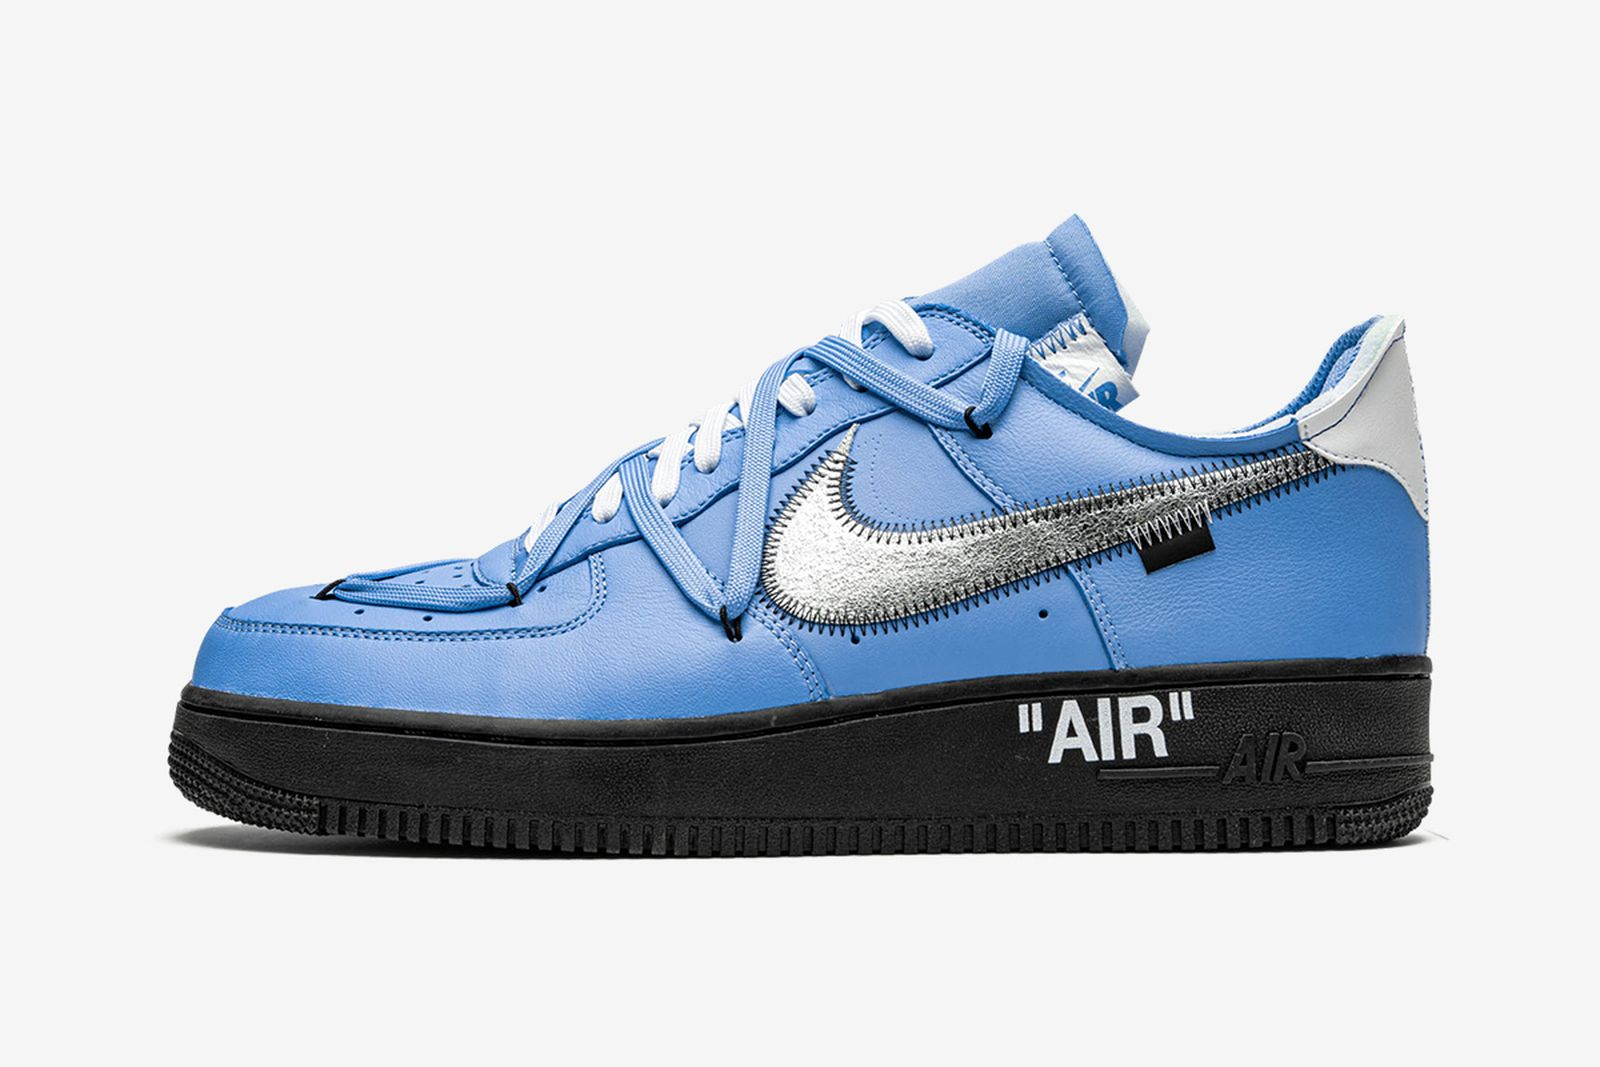 off-white x nike air force 1 mca sample blue